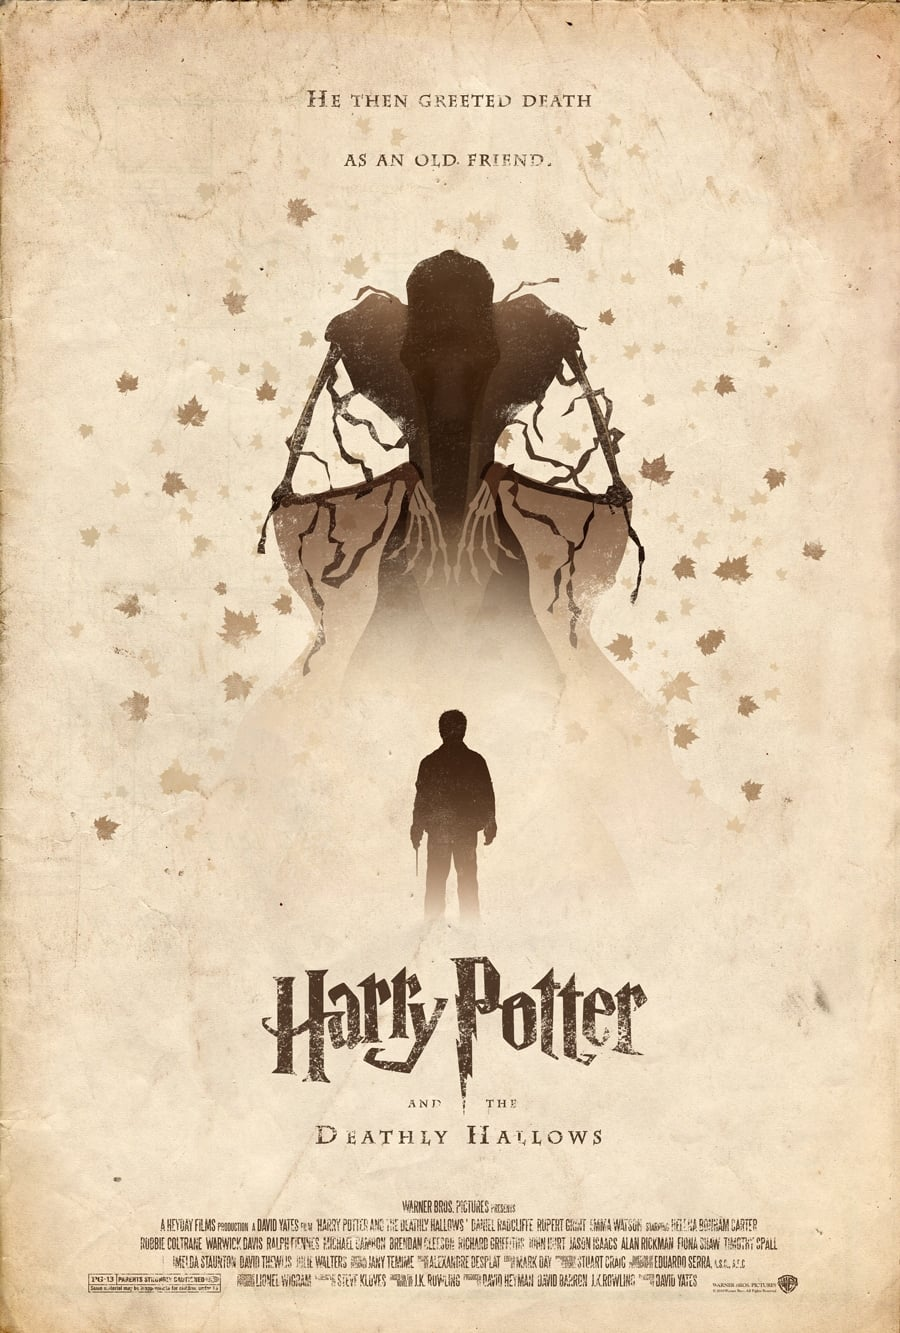 Harry Potter and the Deathly Hallows Art